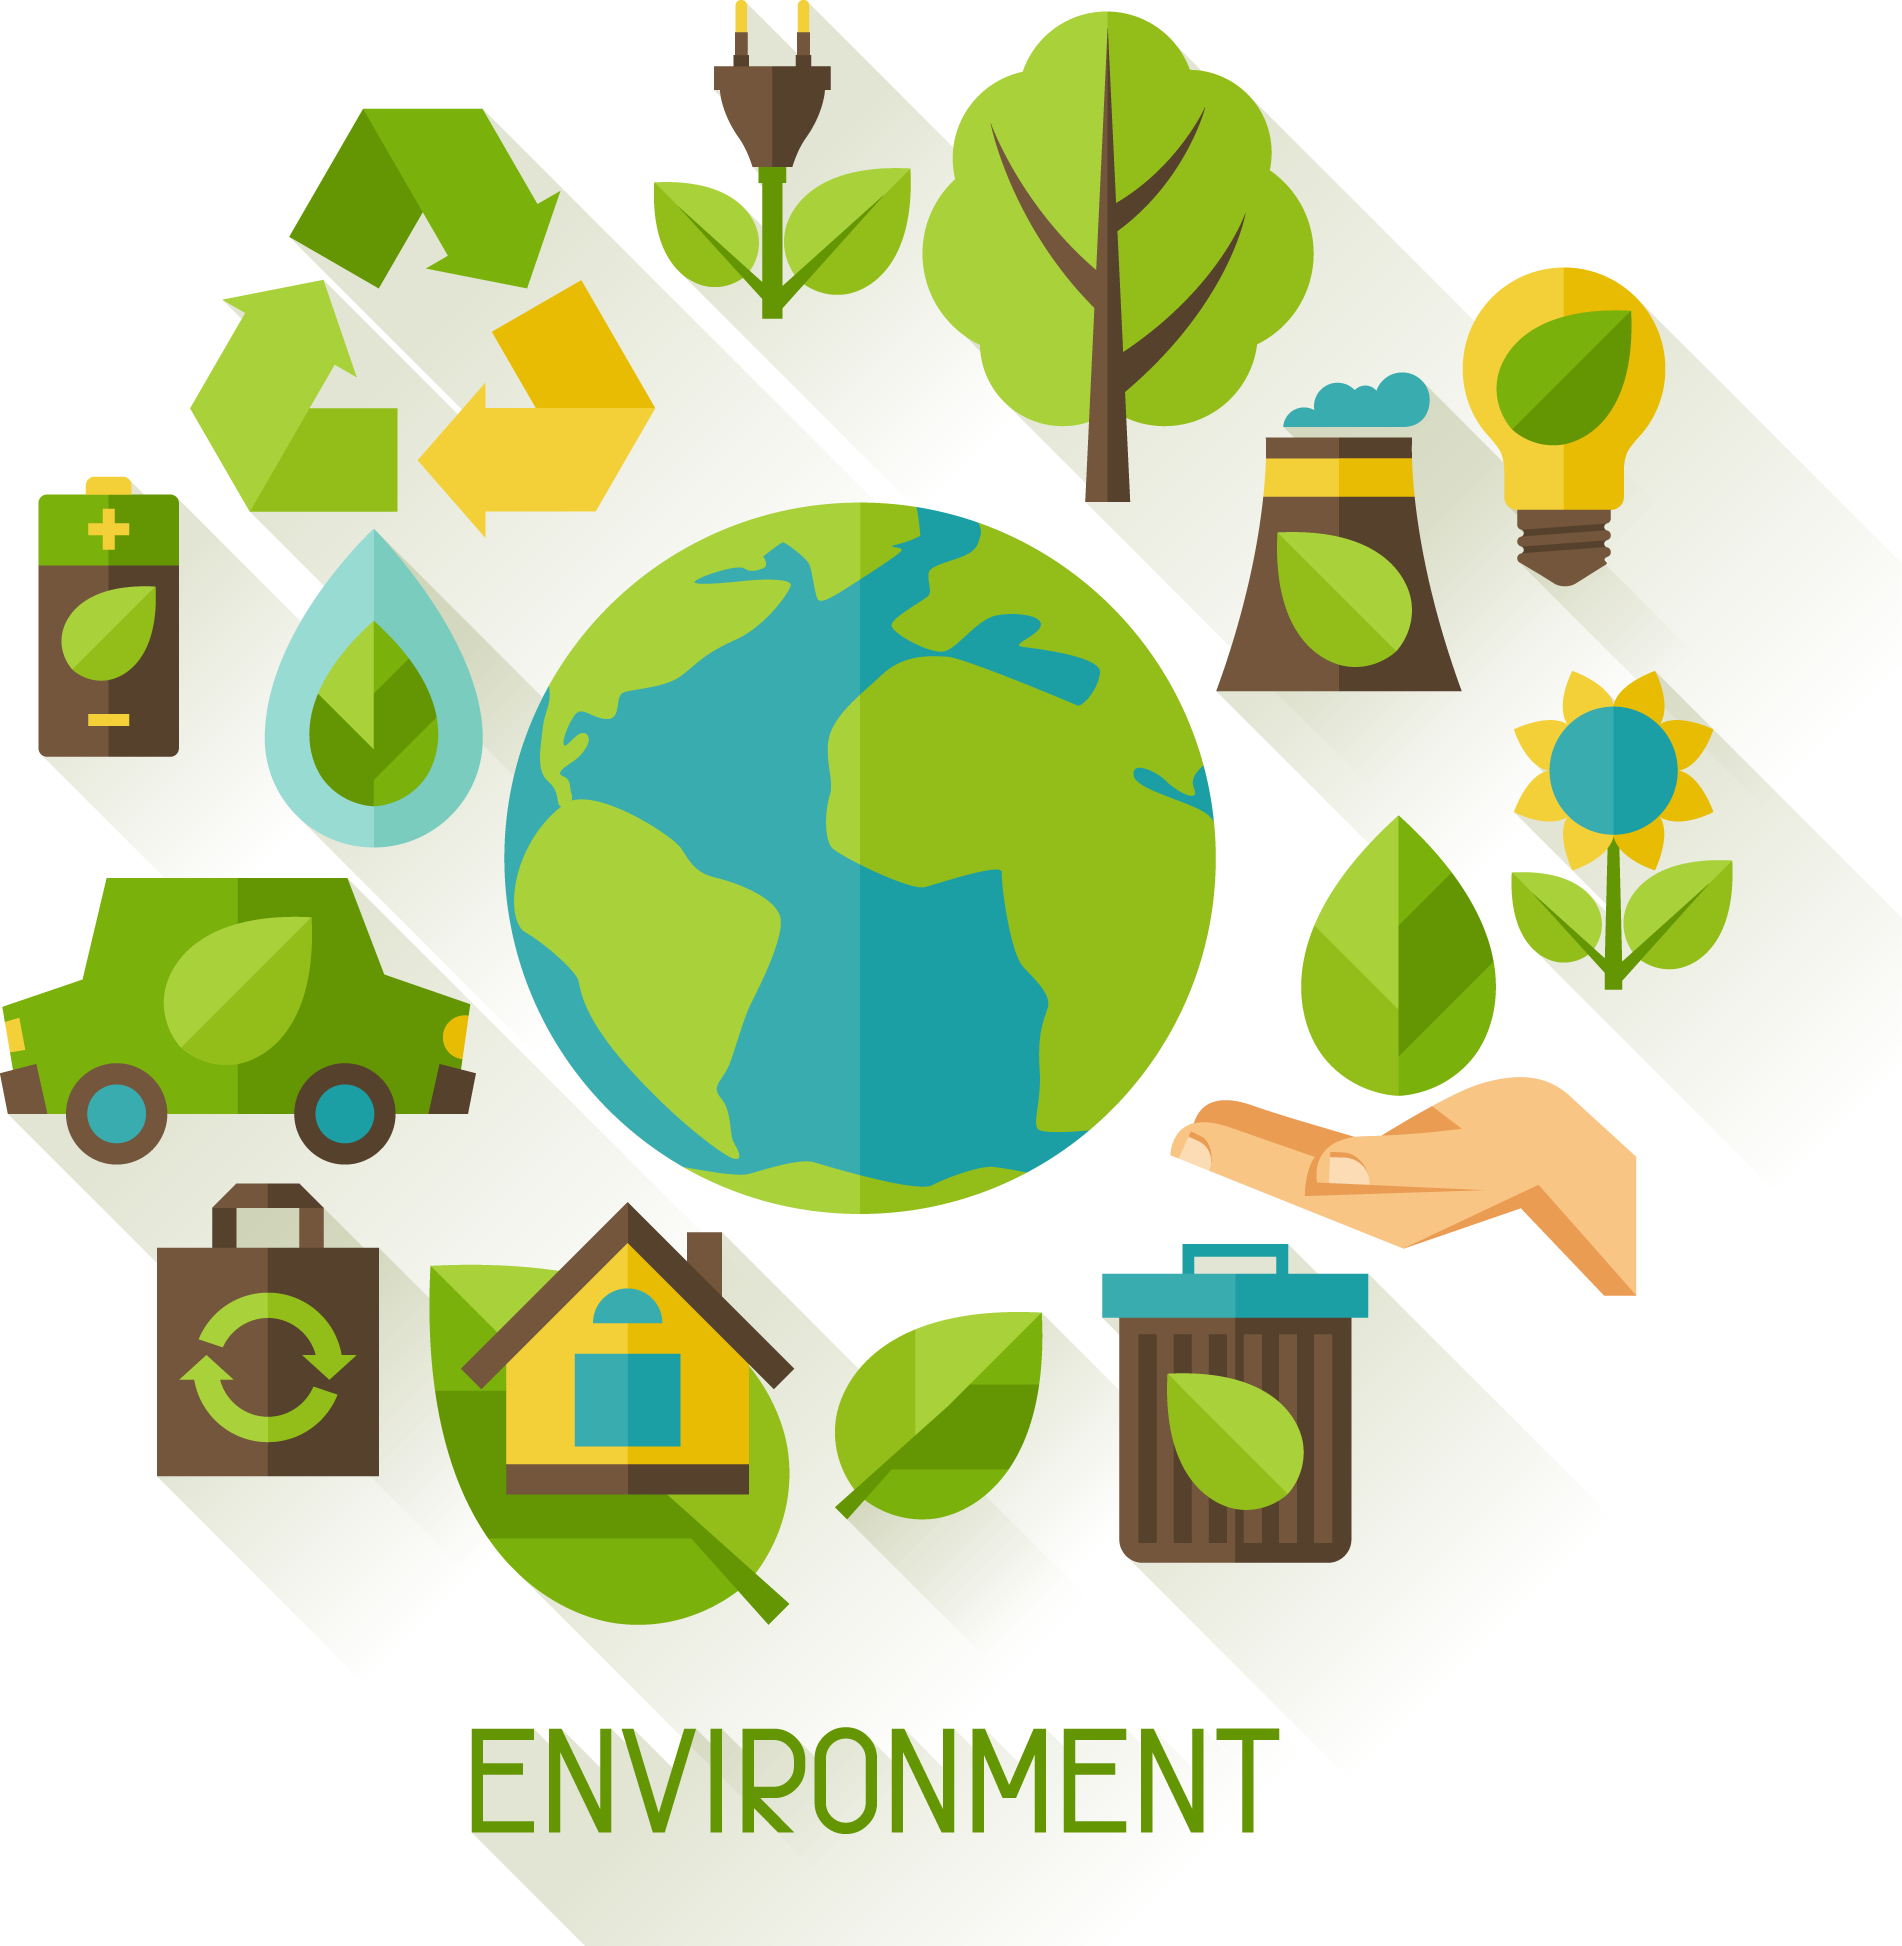 Environment clipart pollution free environment. Ecology illustration calls for